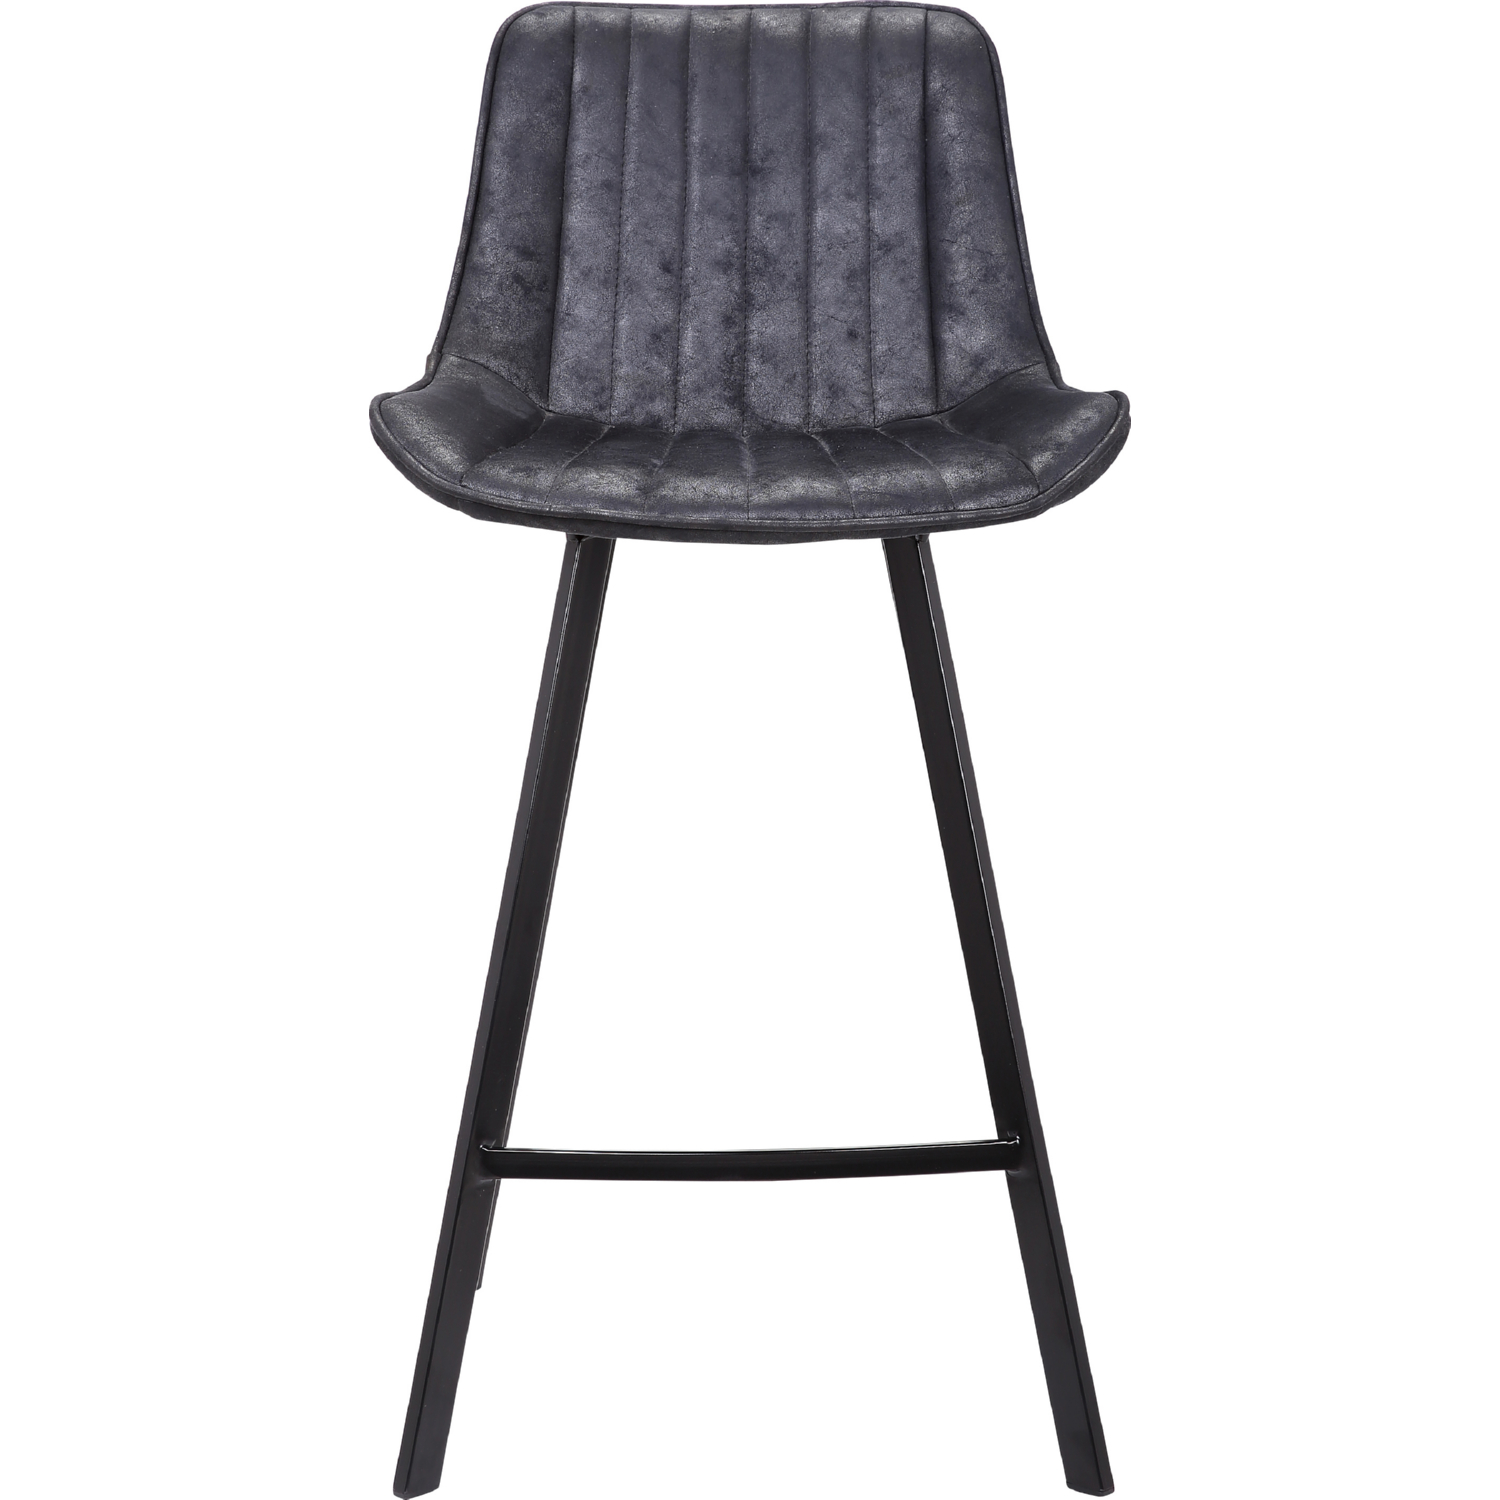 Surprising Bastian Counter Stool In Channel Tufted Lustrous Black Leatherette By New Pacific Direct Lamtechconsult Wood Chair Design Ideas Lamtechconsultcom